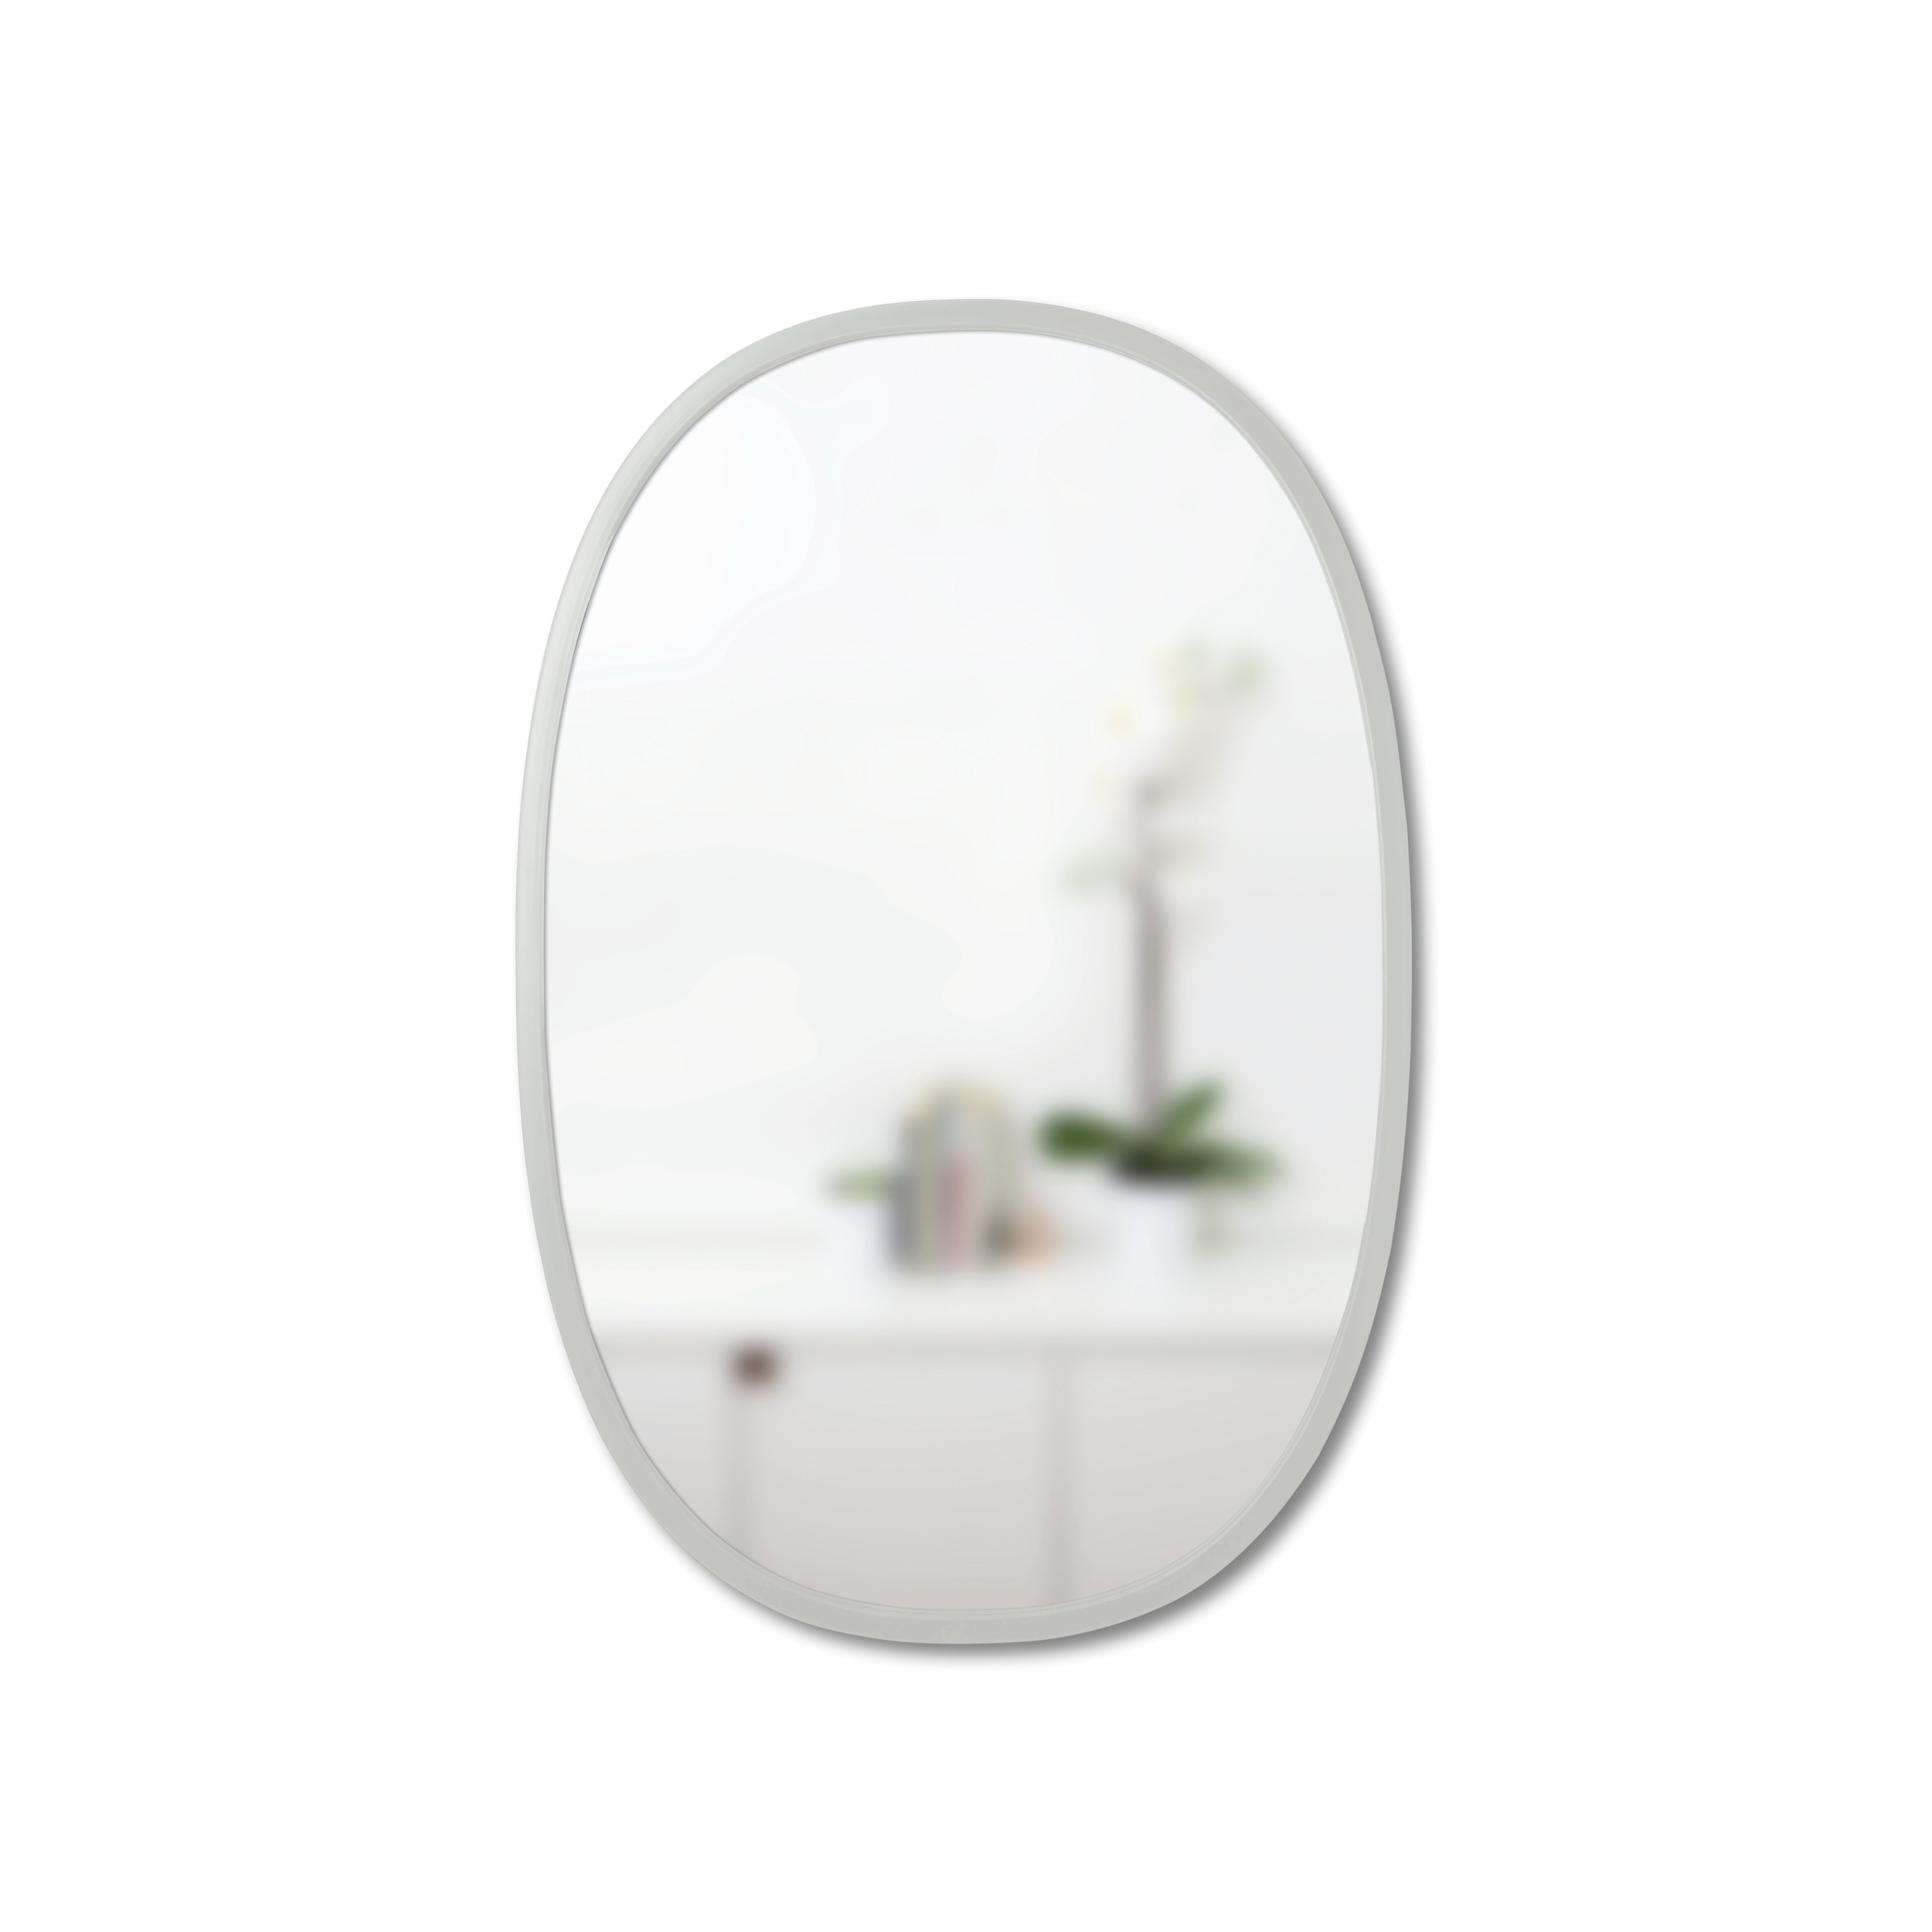 Hub Modern & Contemporary Accent Mirror Pertaining To Hub Modern And Contemporary Accent Mirrors (View 2 of 30)